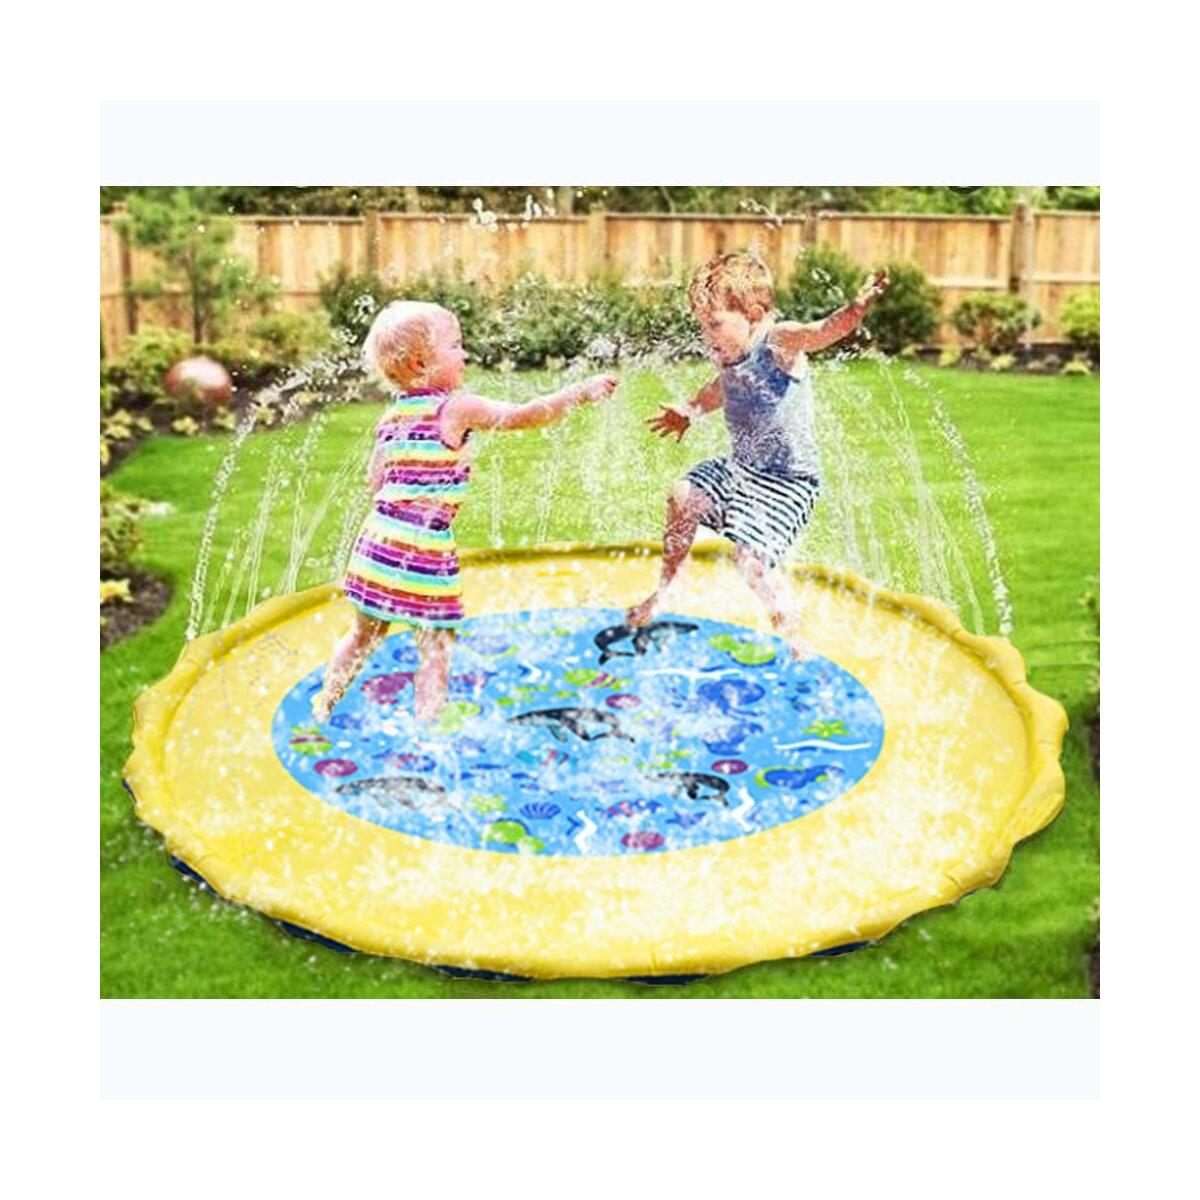 Splash Play Mat - SOWOW Outdoor Water Play Sprinklers,Summer Fun Backyard Play for Infant and Kids,Sprinklers for Outside,Splash Pad for Toddler,Baby Pool 60